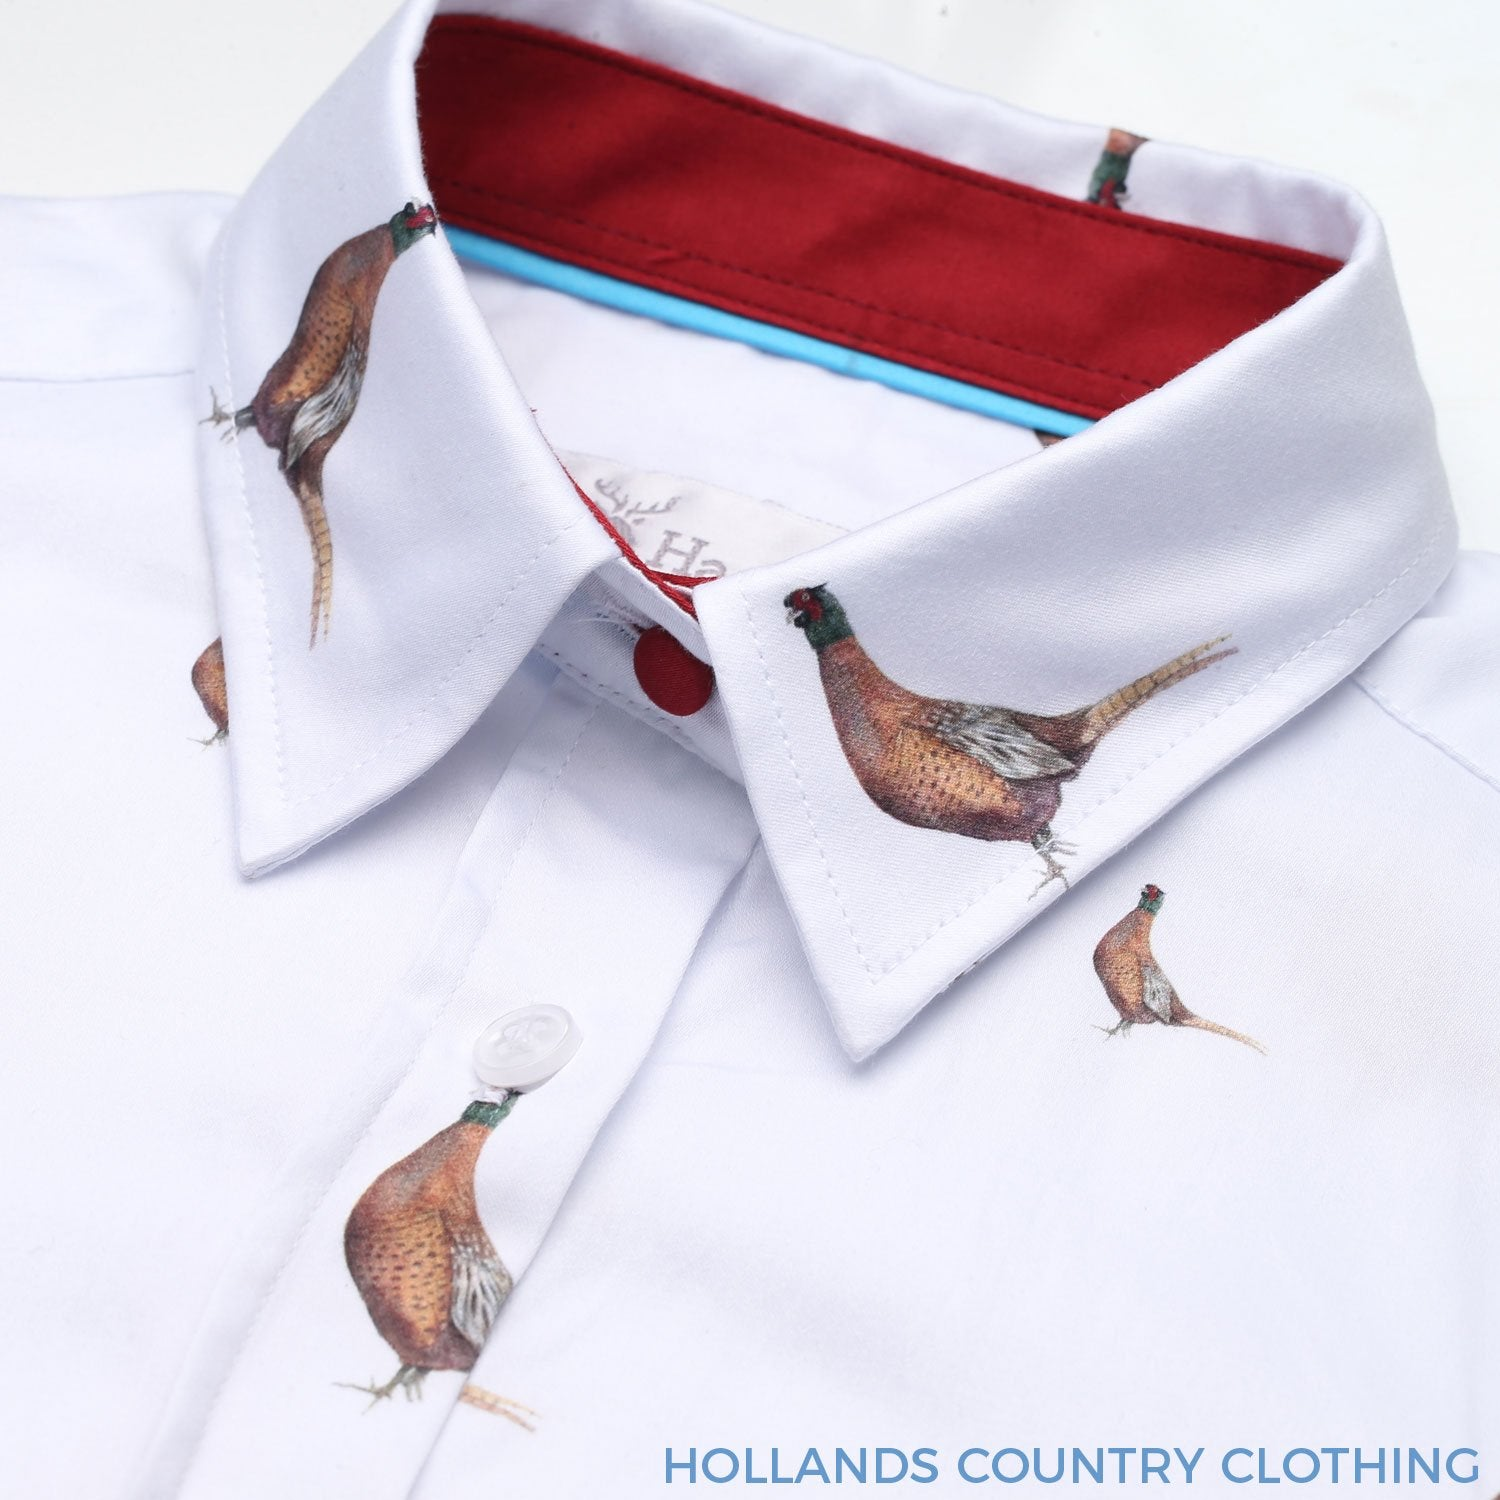 White shirt with colourful pheasant pattern and red trim